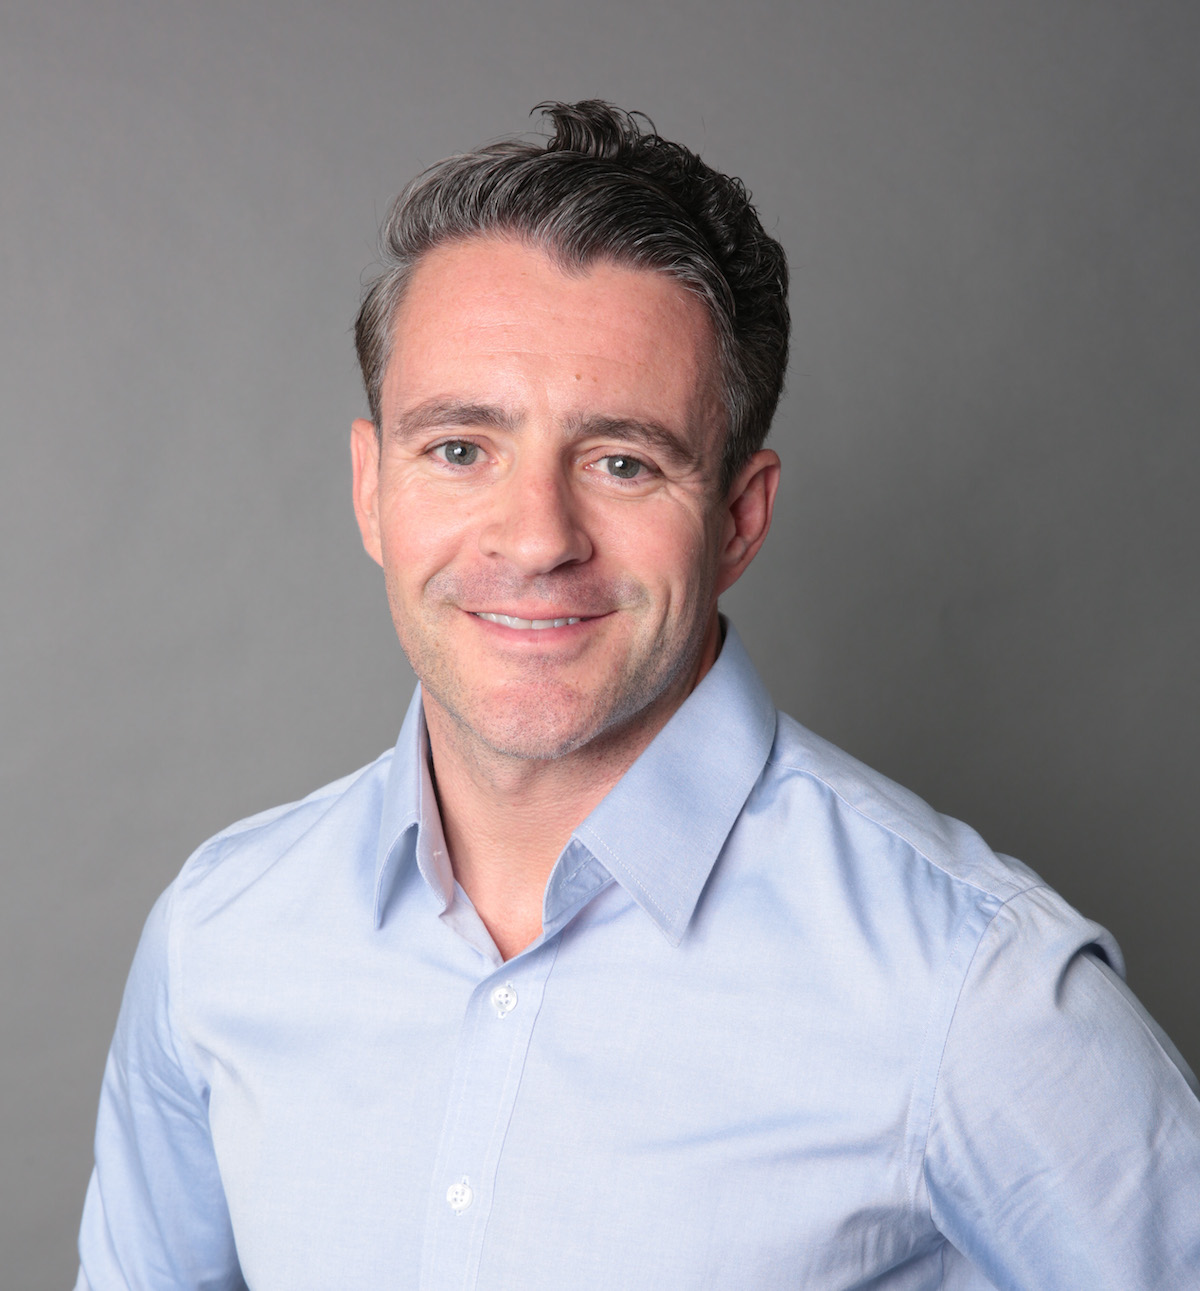 Danny Bass joins Snap as director to lead the ANZ business solutions team